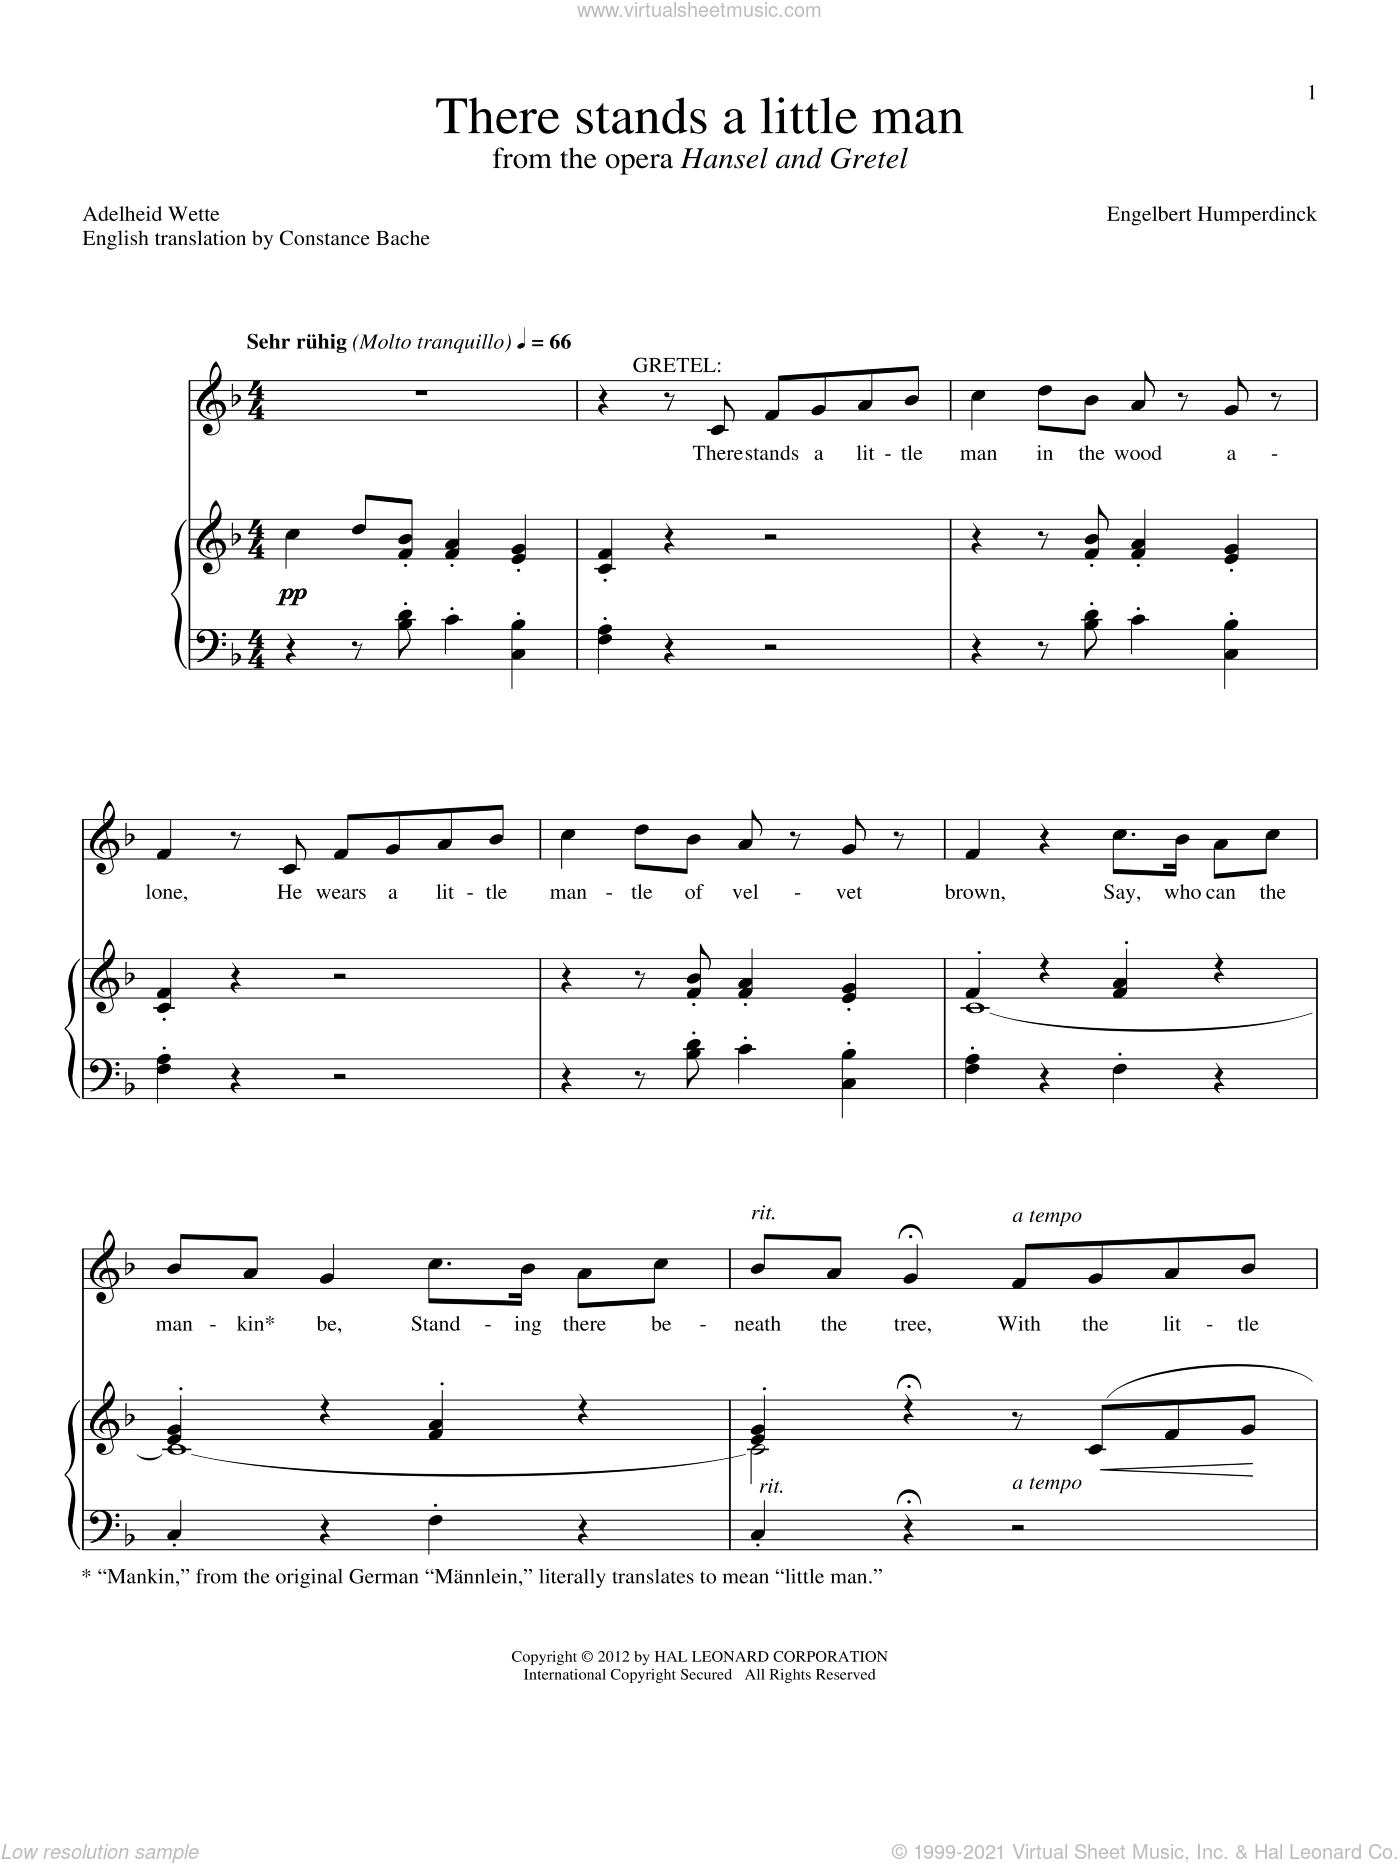 There Stands A Little Man sheet music for voice and piano by Constance Bache. Score Image Preview.